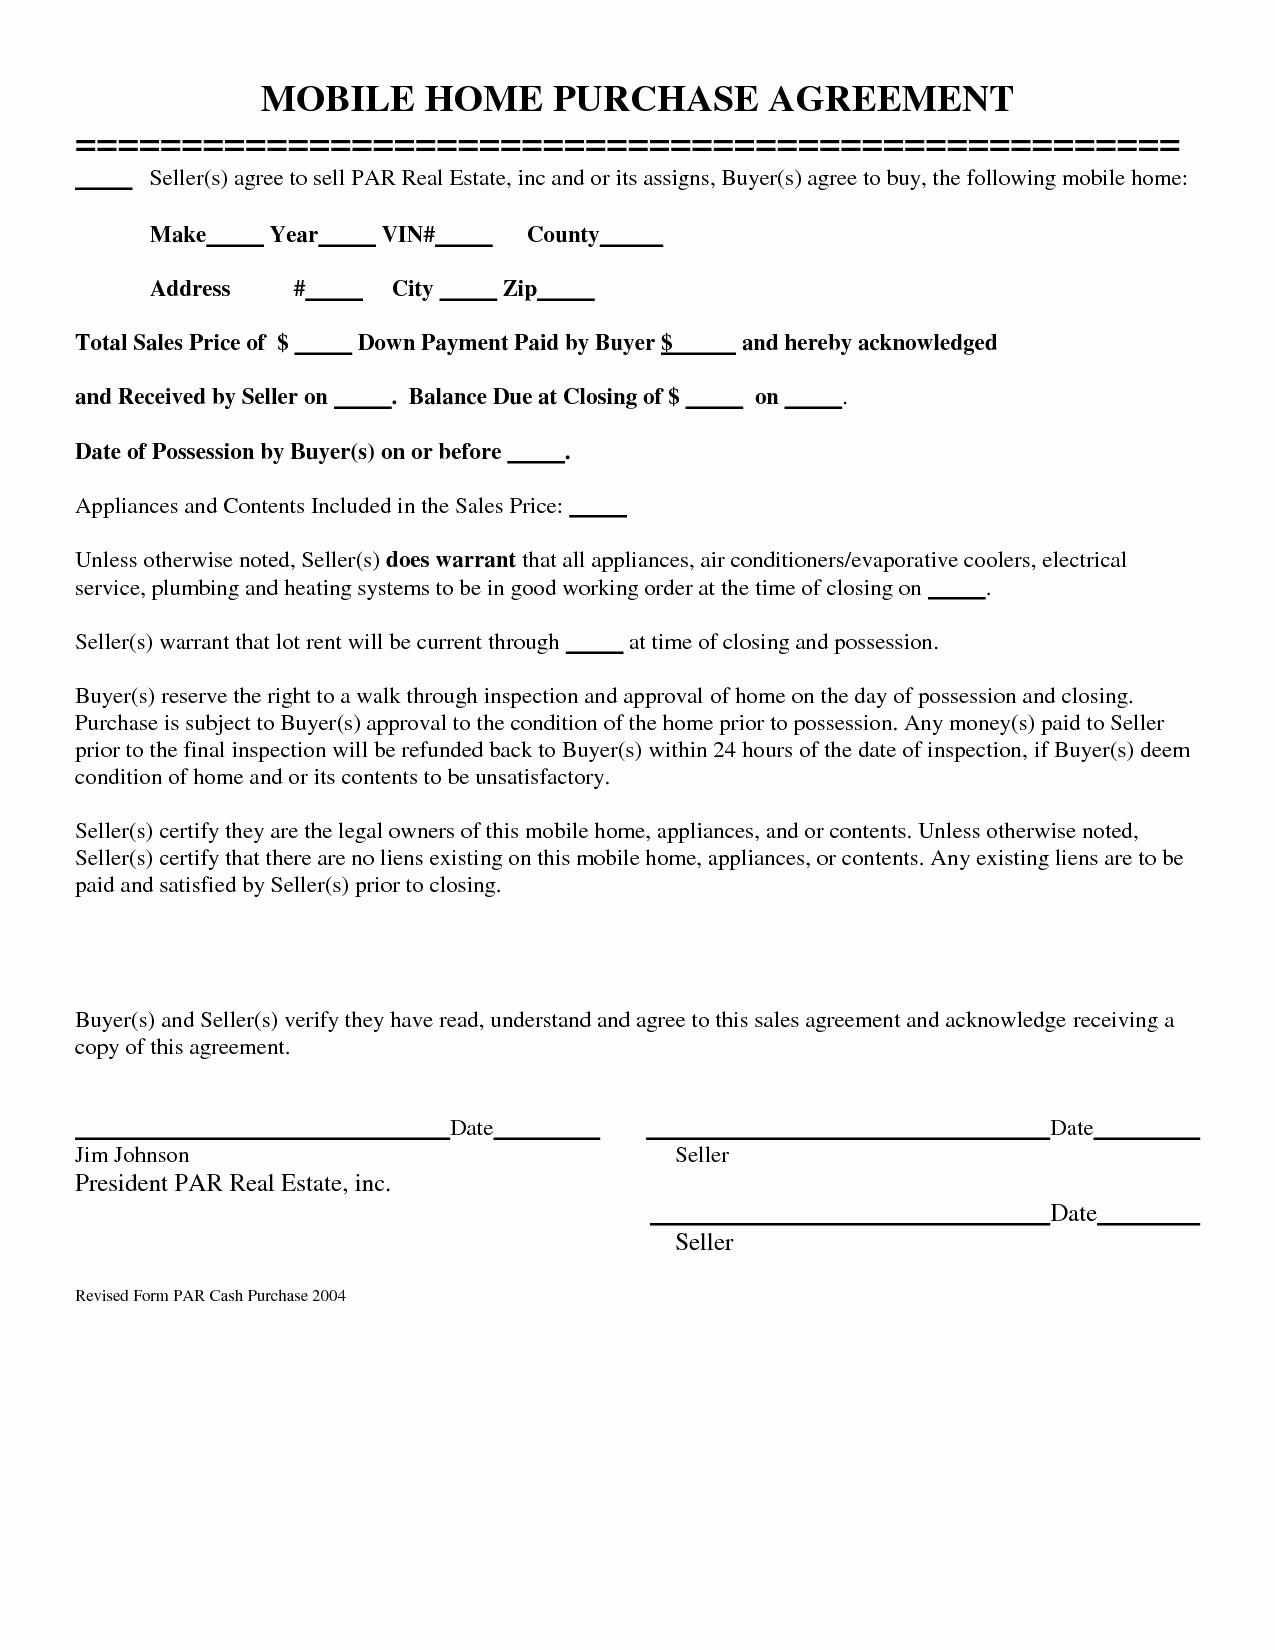 Home Buyout Agreement Template Luxury 10 Best Of Mobile Home Purchase Agreement